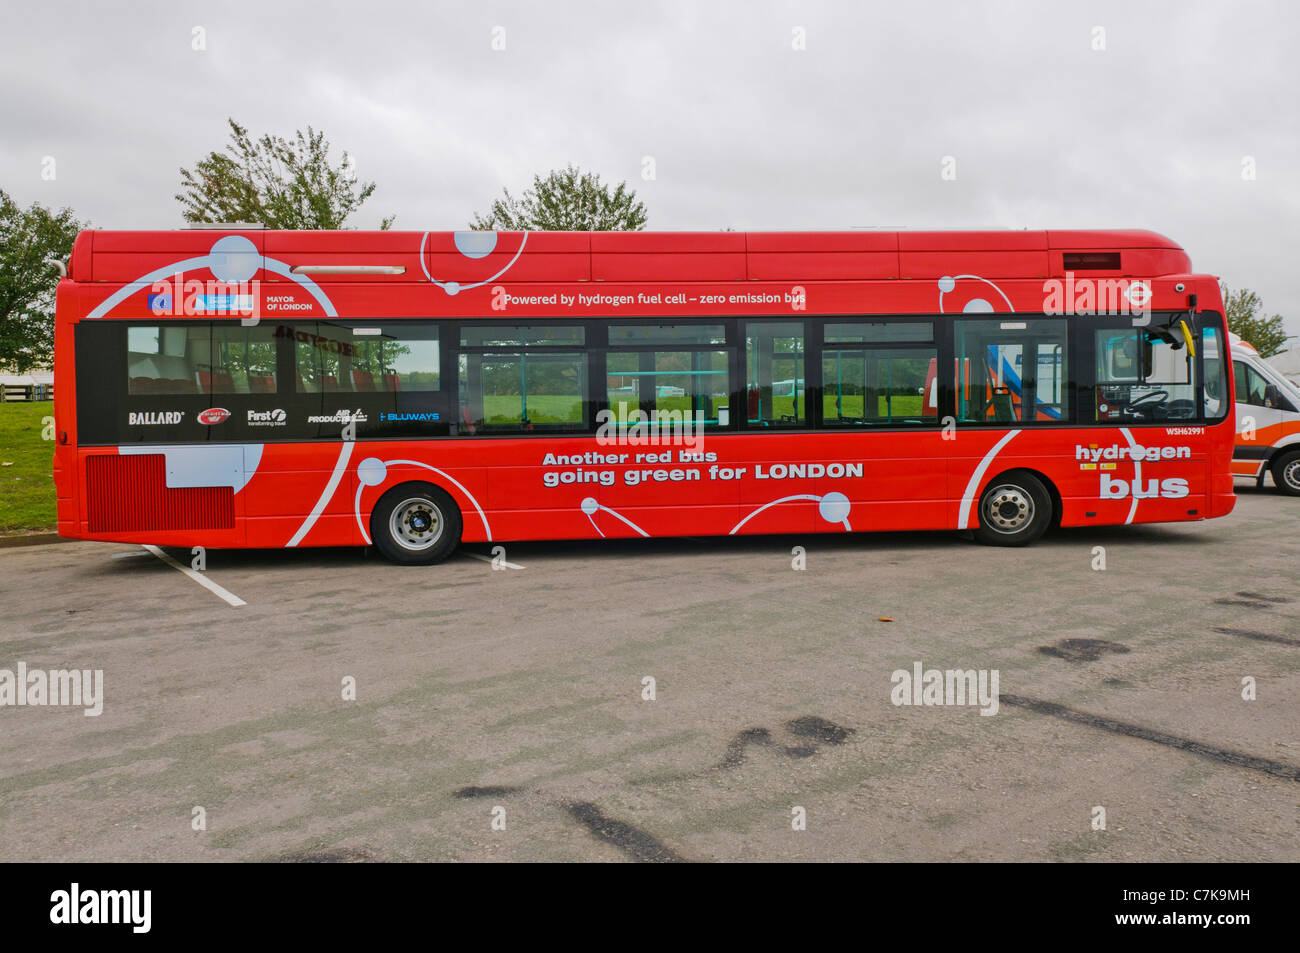 Hydrogen Fuel Cell Bus Stock Photos & Hydrogen Fuel Cell Bus Stock